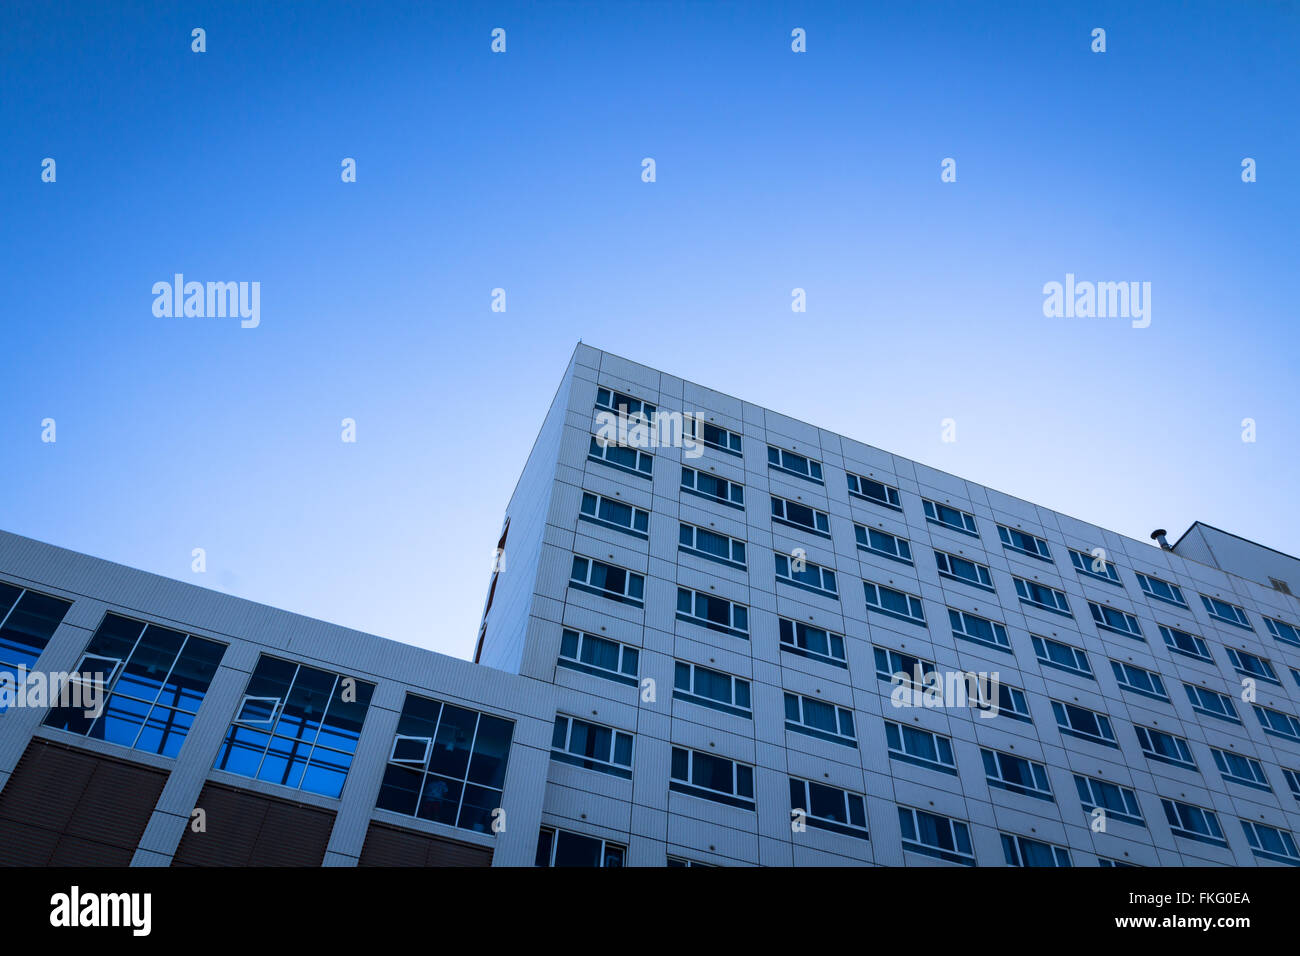 square side of pane in business center over blue bright sky. - Stock Image